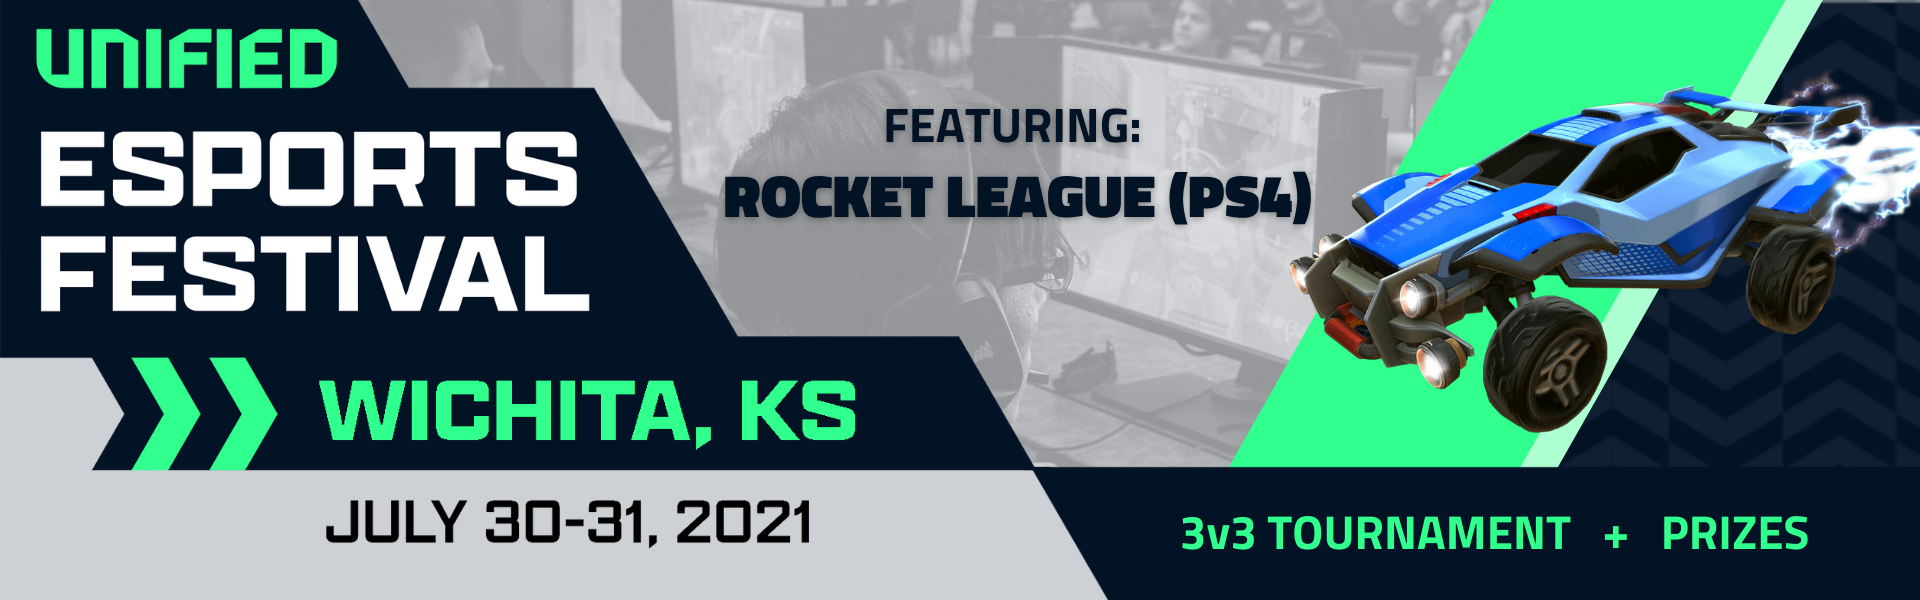 EF:ICT Featuring Rocket League (PS4)